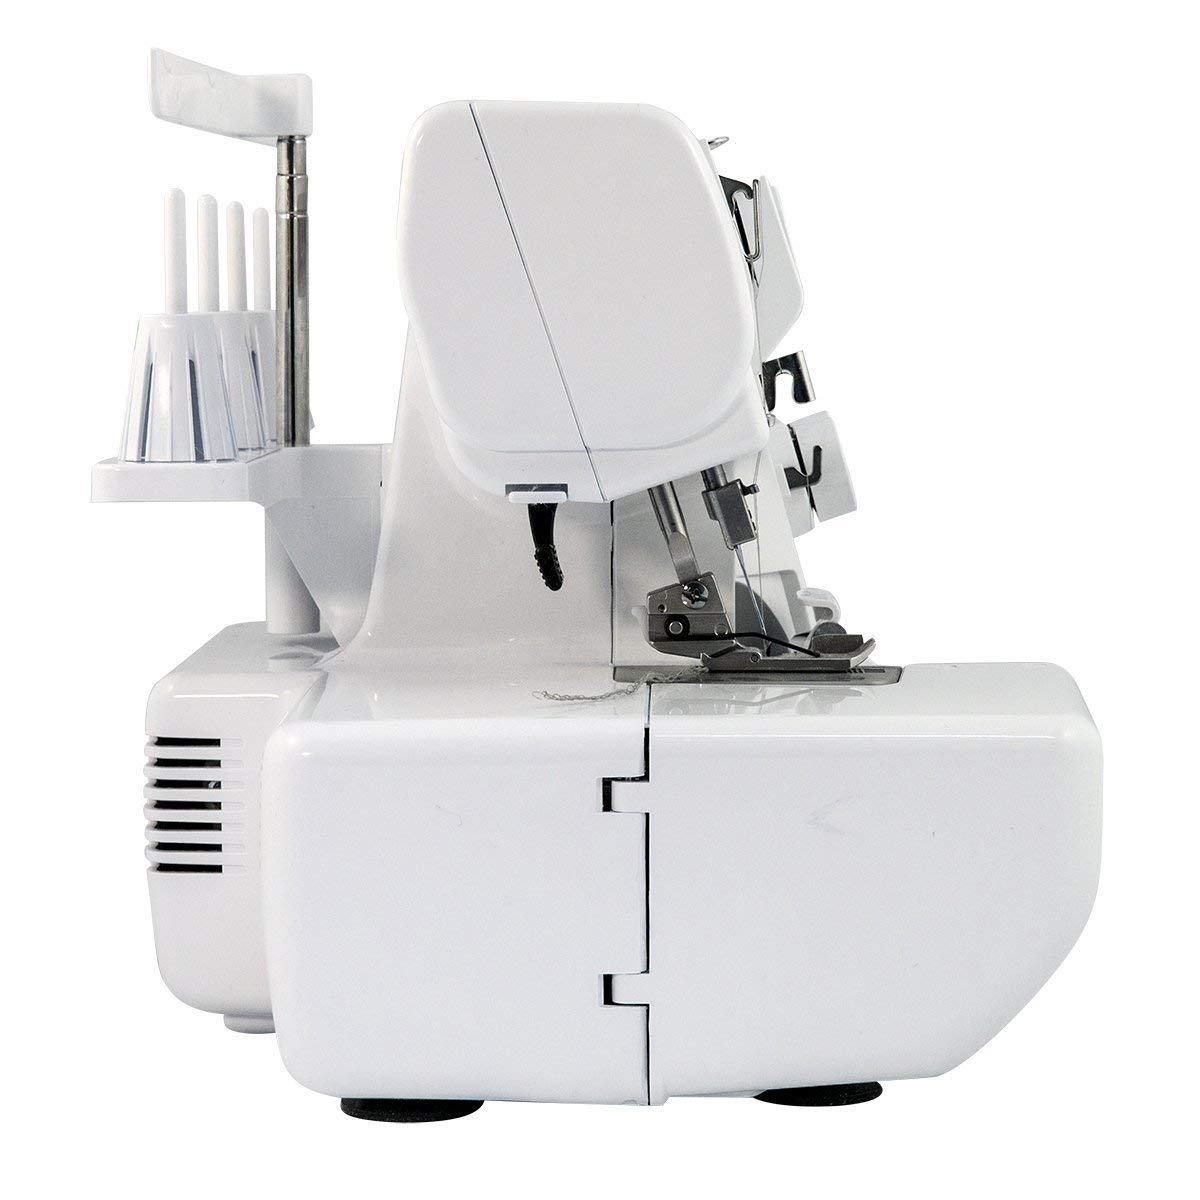 The Best Serger In The Market 1